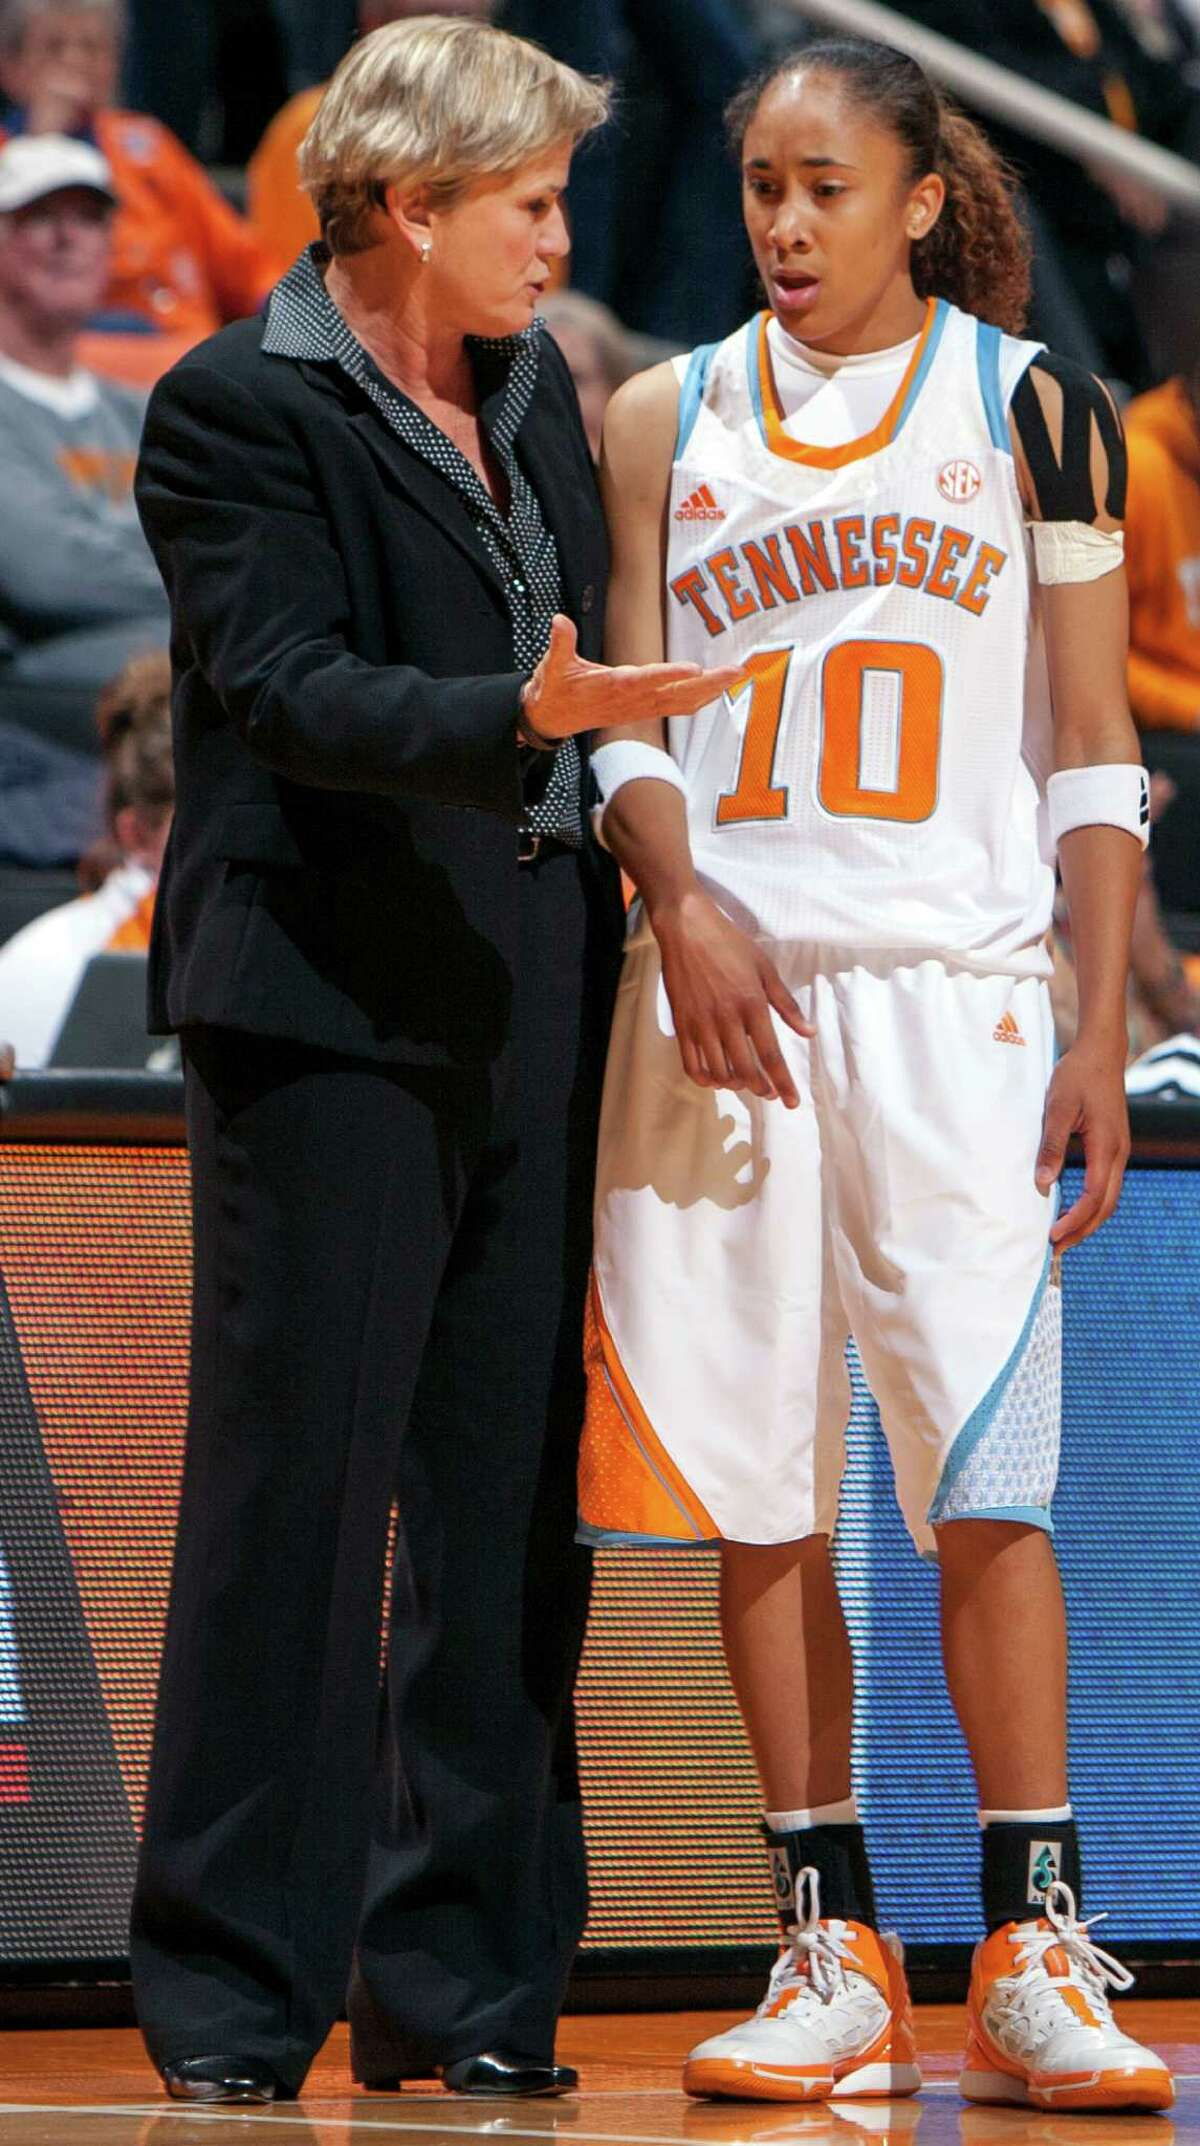 Tennessee head coach Holly Warlick talks with guard Meighan Simmons (10) during the second half of their exhibition NCAA college basketball game against Carson-Newman, Thursday, Nov. 1, 2012, in Koxville, Tenn. (AP Photo/The Knoxville News Sentinel, Adam Brimer)